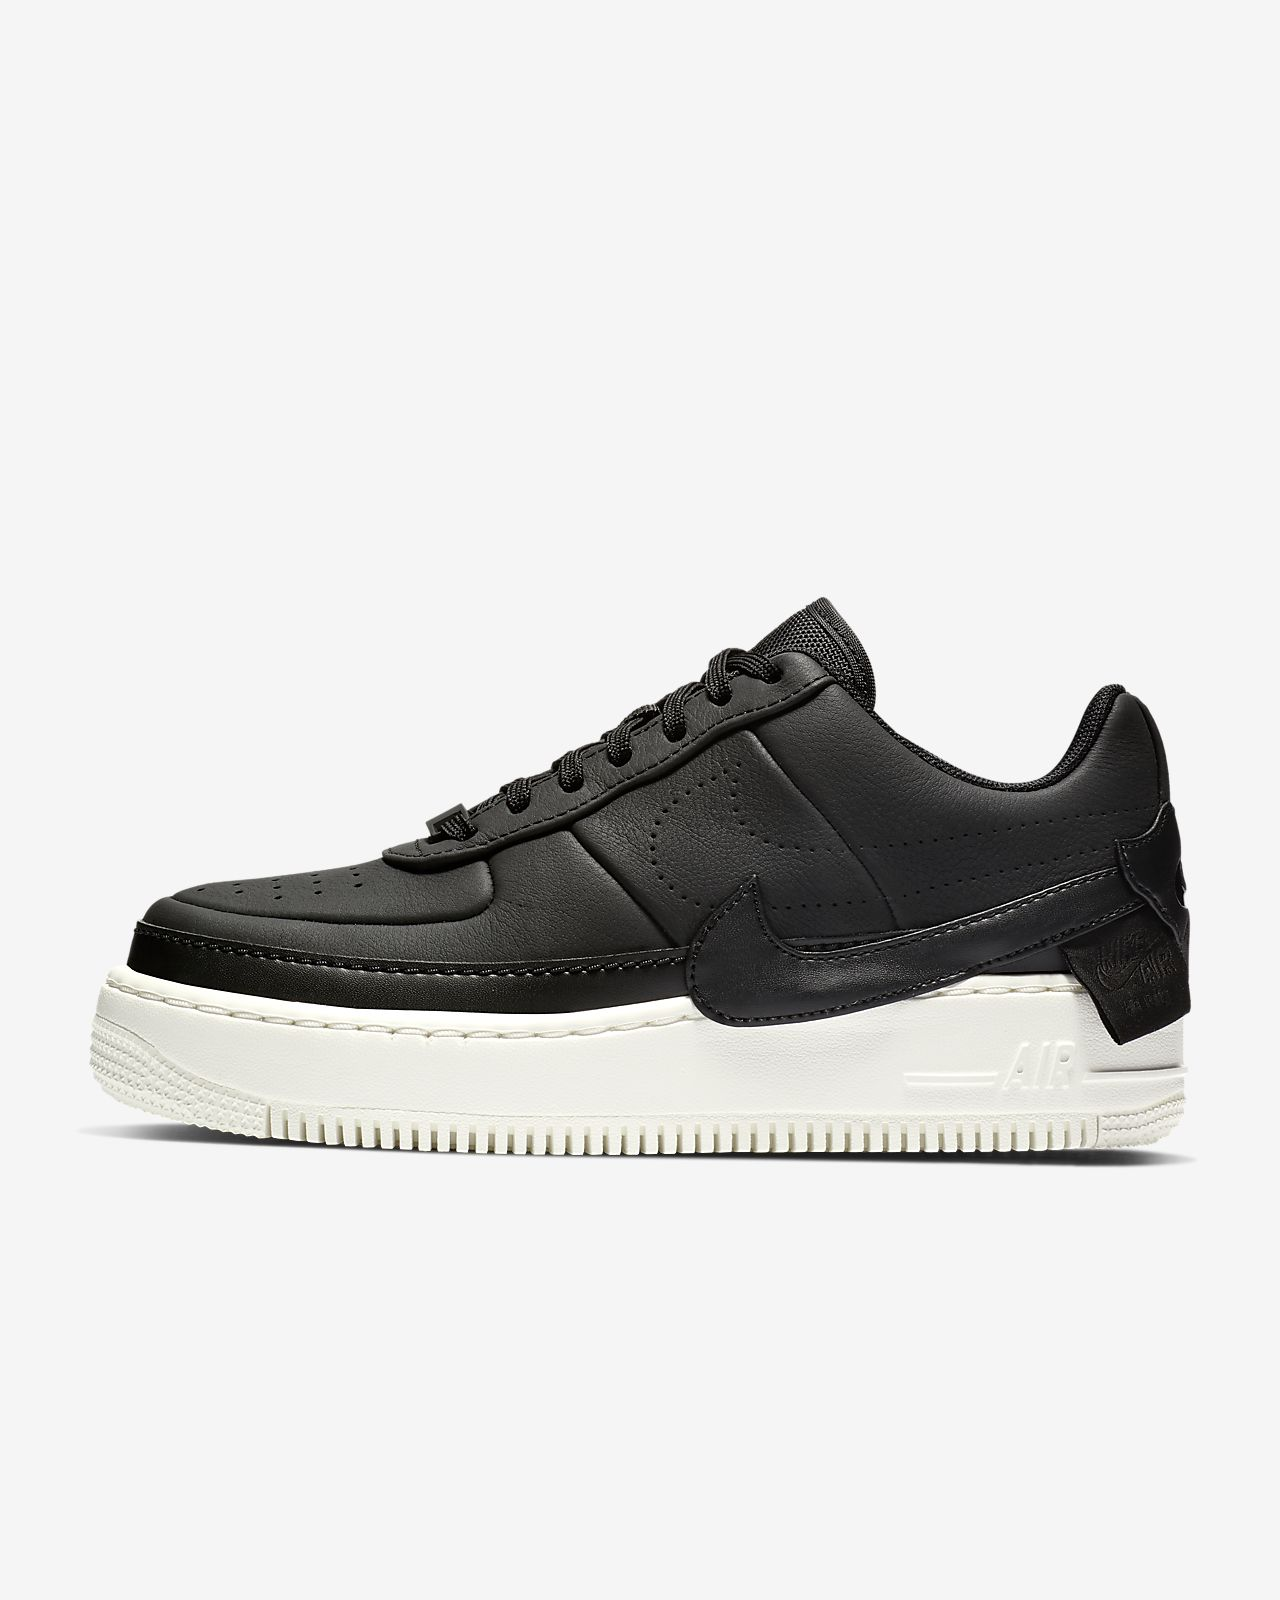 77a205c4b3cd Nike Air Force 1 Jester XX Premium Women s Shoe. Nike.com RO